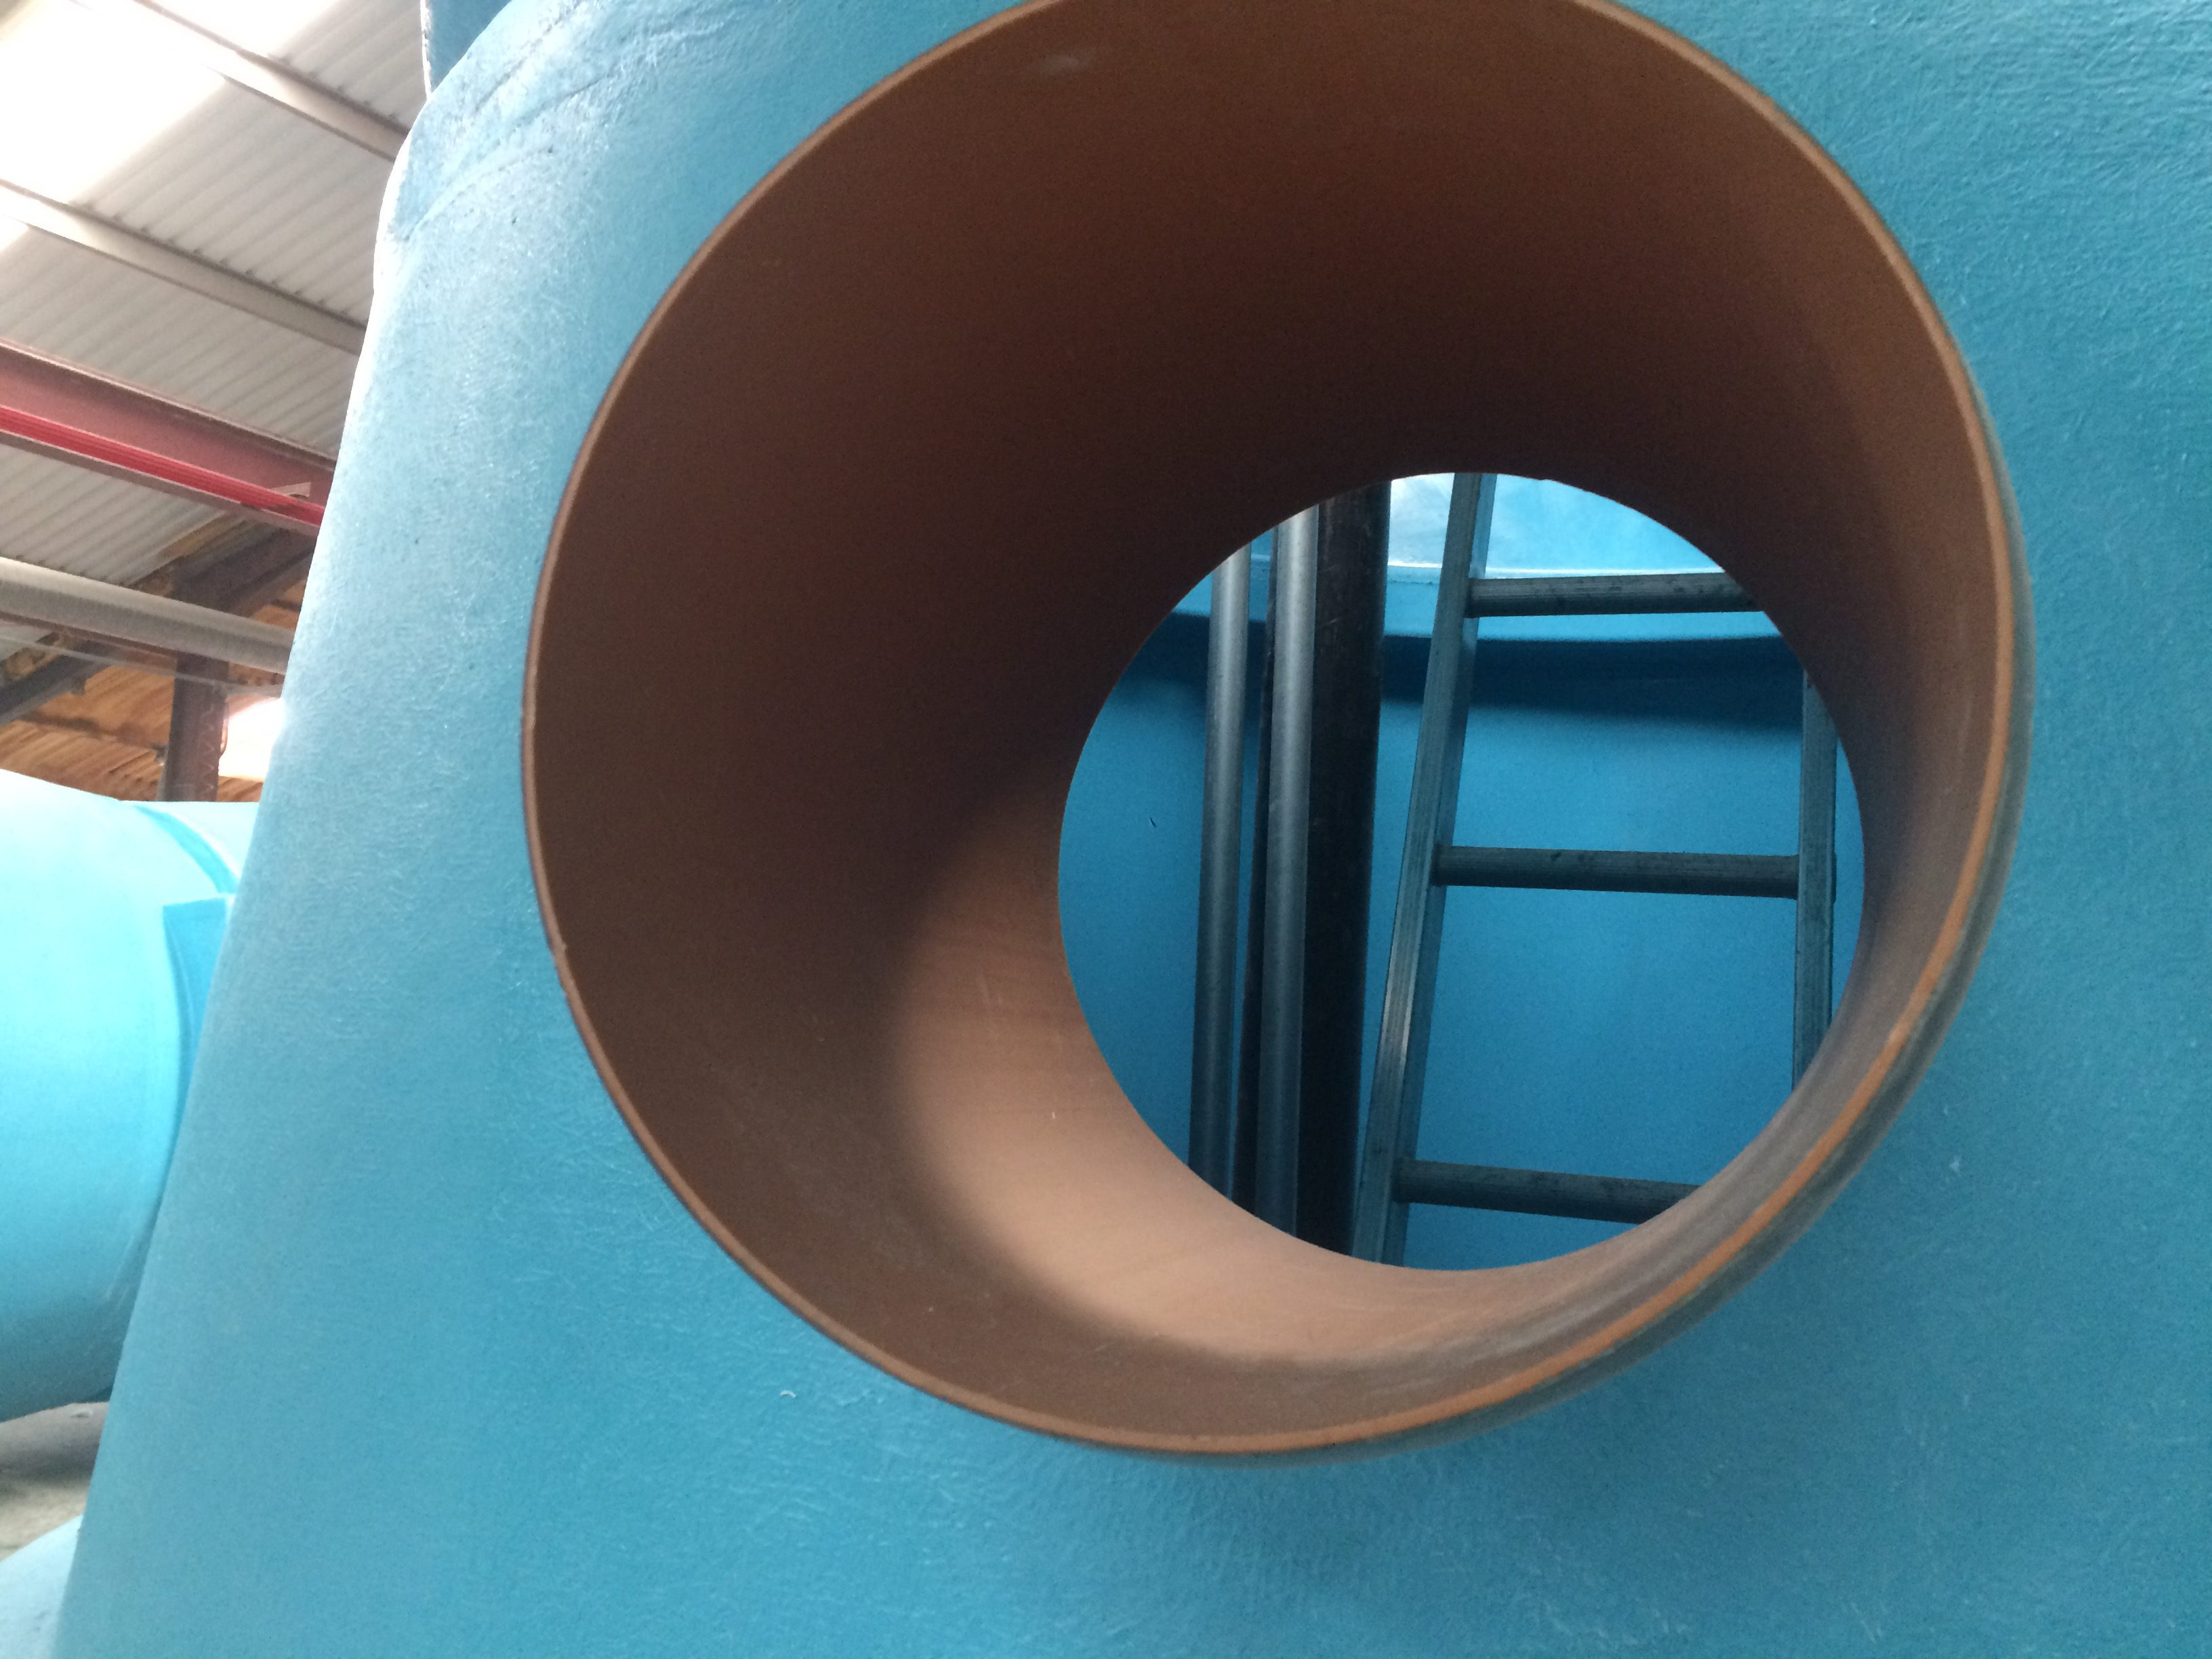 Large Pre-installed inlet pipe in package pump station